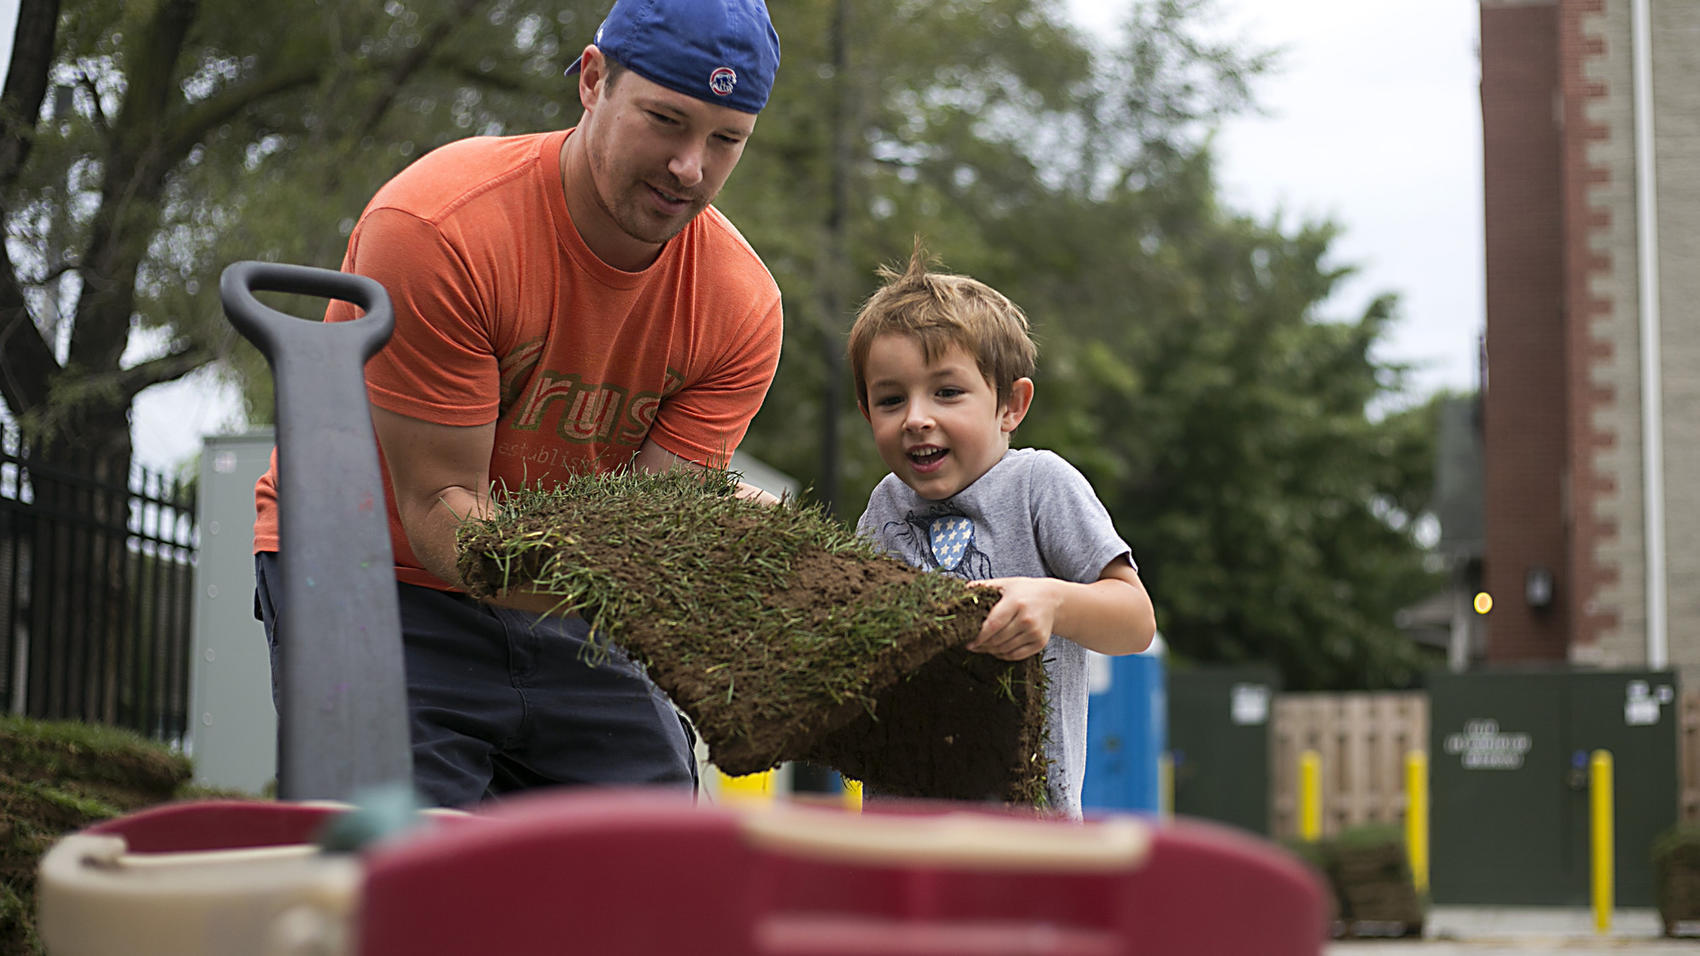 Cubs fans take home pieces of Wrigley - Sun Sentinel